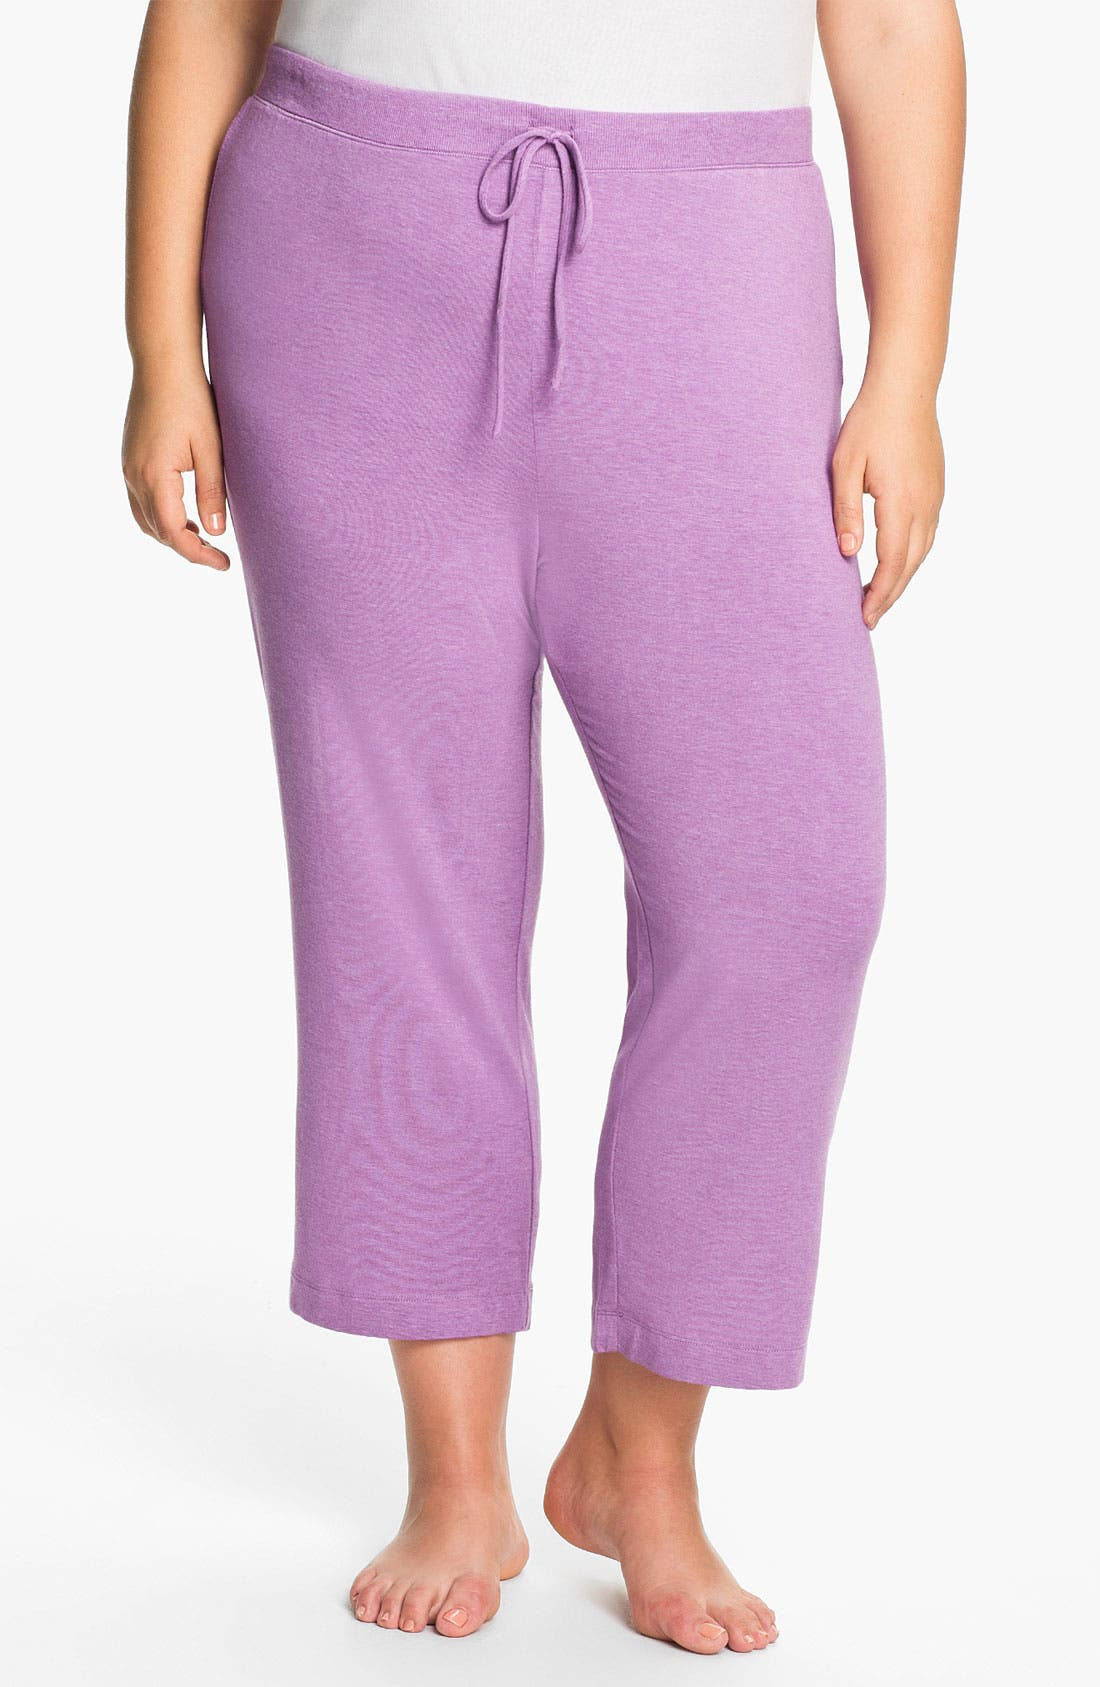 Alternate Image 1 Selected - DKNY '7 Easy Pieces' Capri Pants (Plus Size)